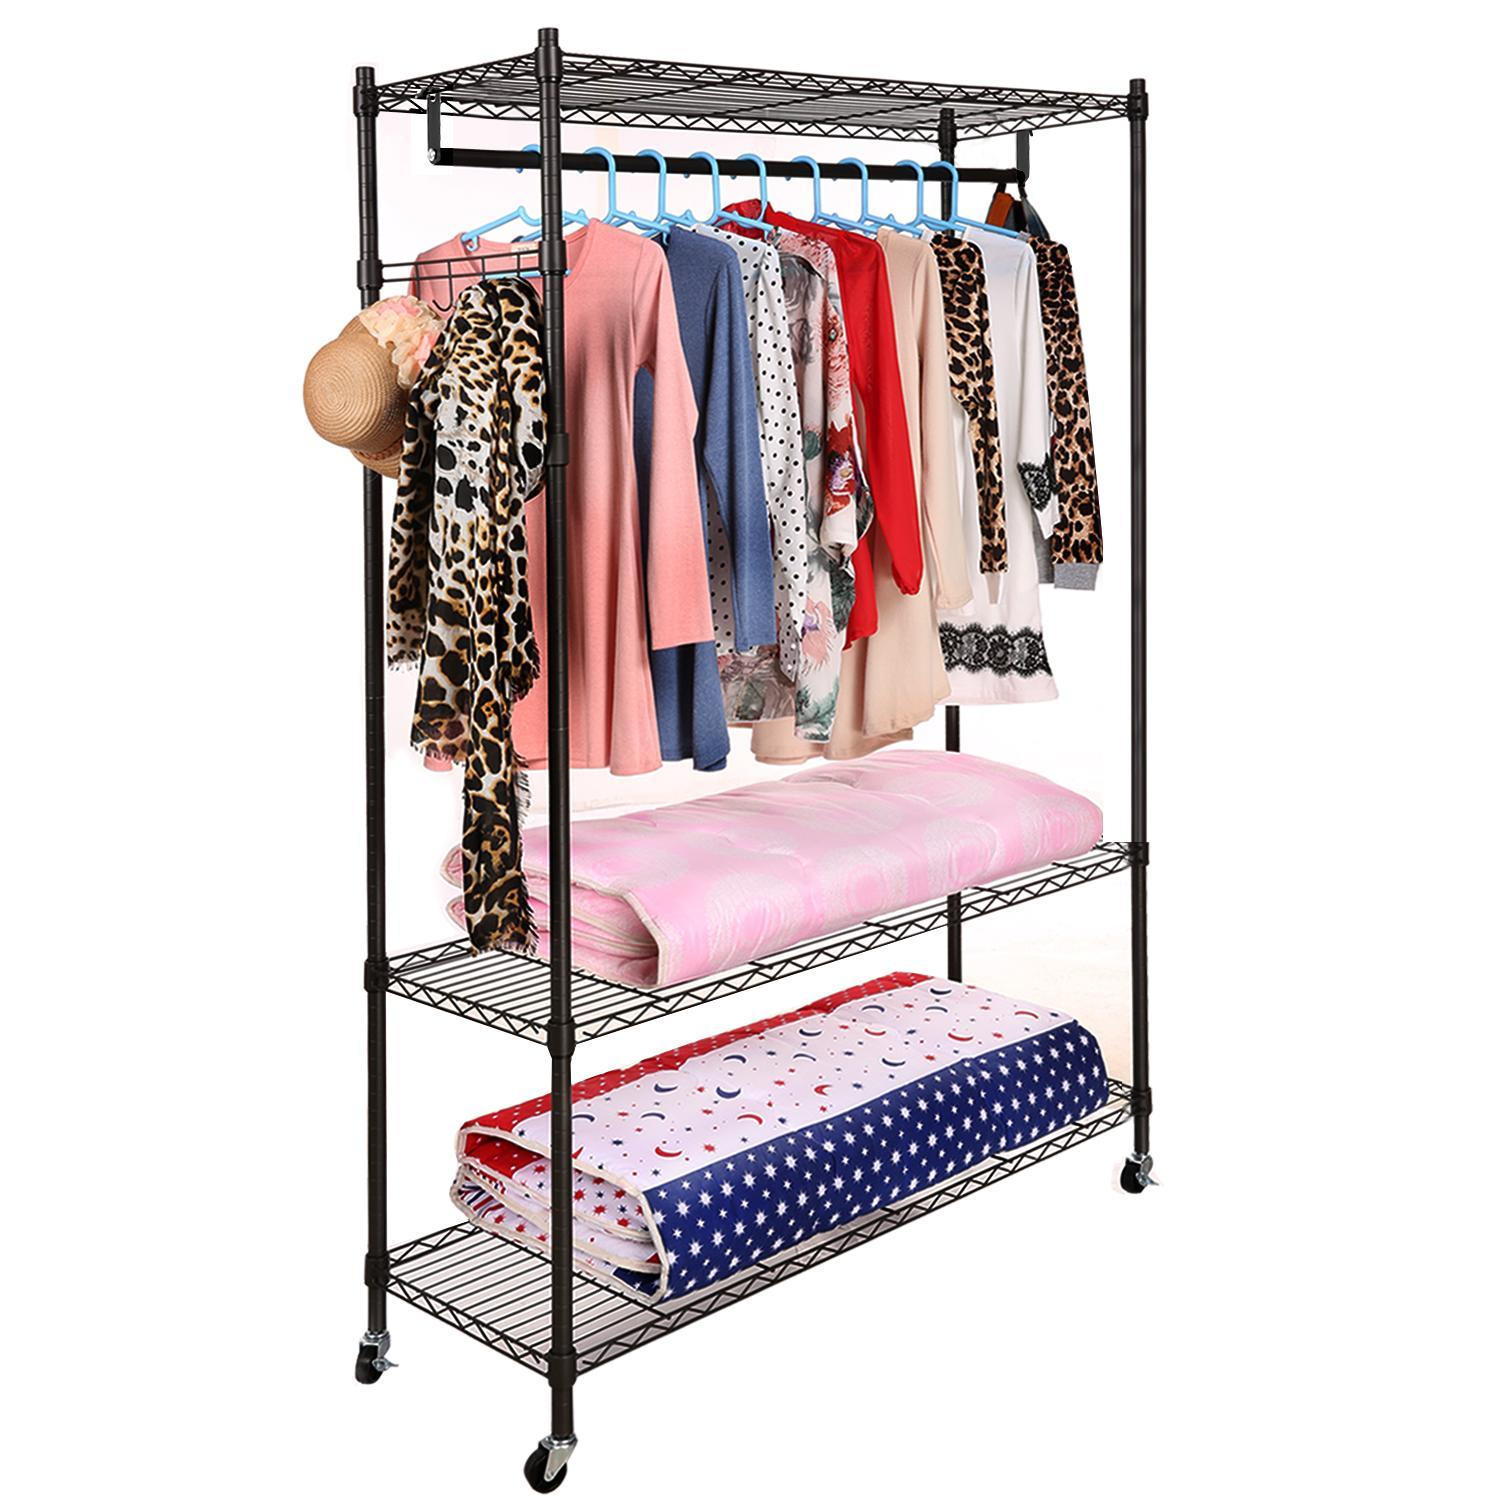 3-Tier Portable Wire Shelving Clothes Shelf Closet Organizer Rack with Side Hook And Wheels LEO